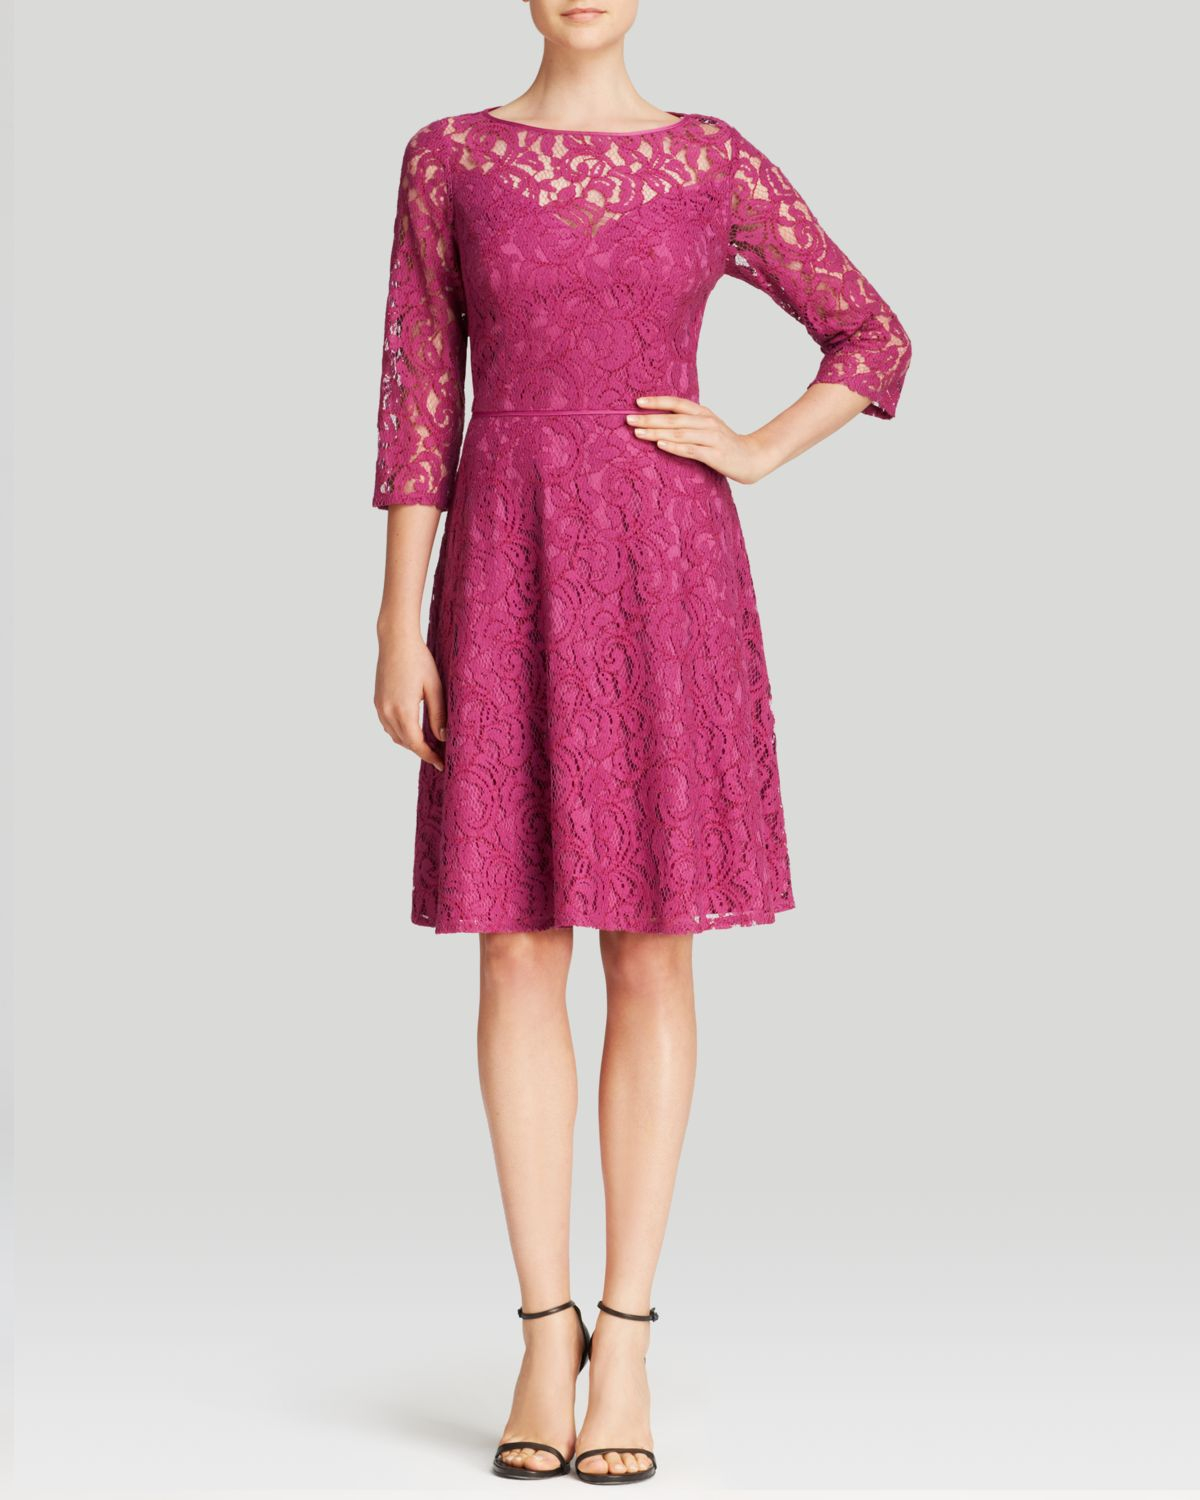 Adrianna Papell Dress Three Quarter Sleeve Lace Fit And